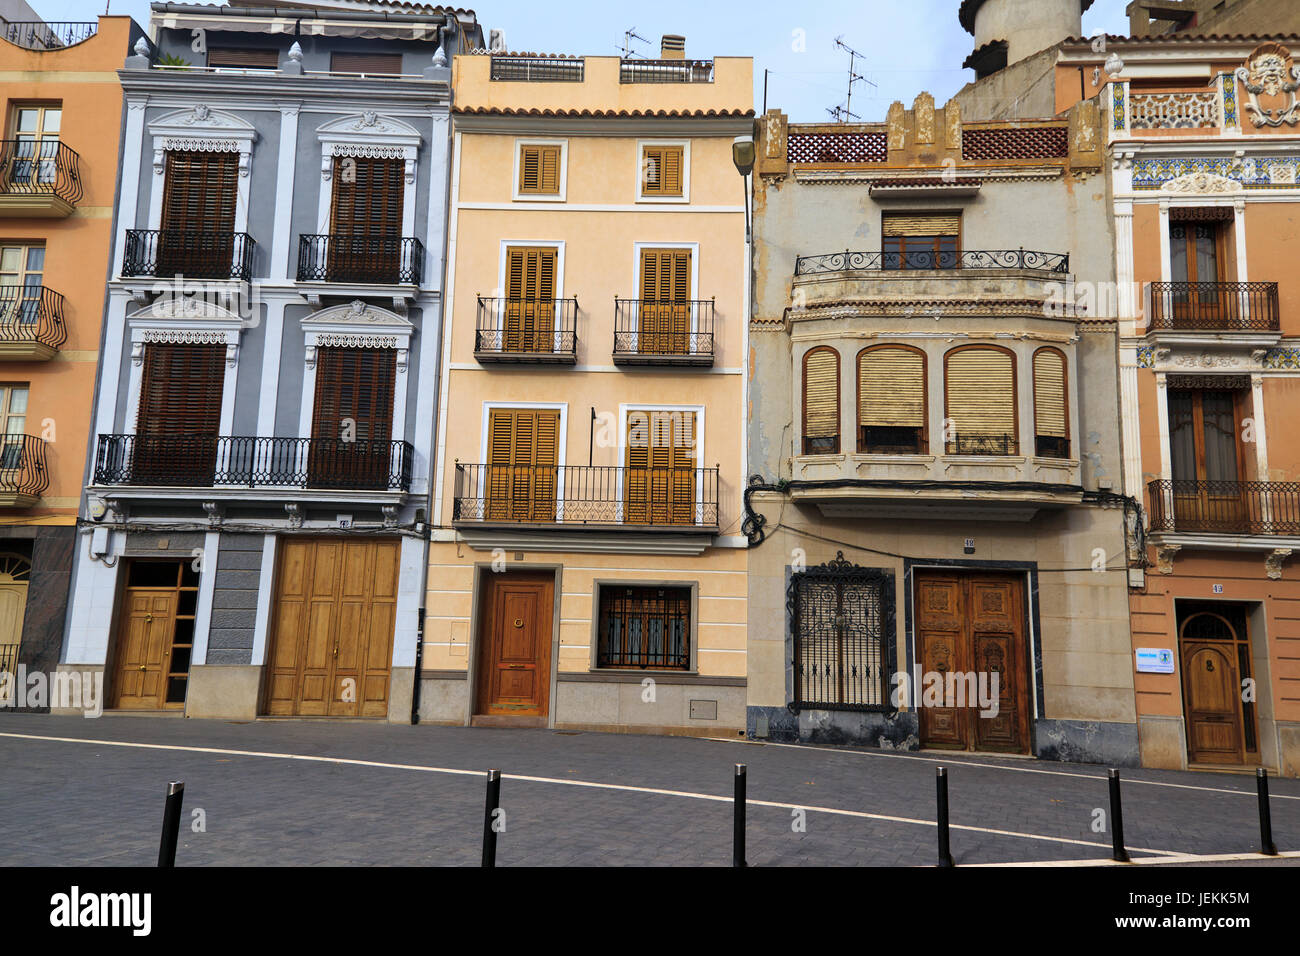 Differing architectural styles of buildings in Onda, Province of Castellon, Spain - Stock Image